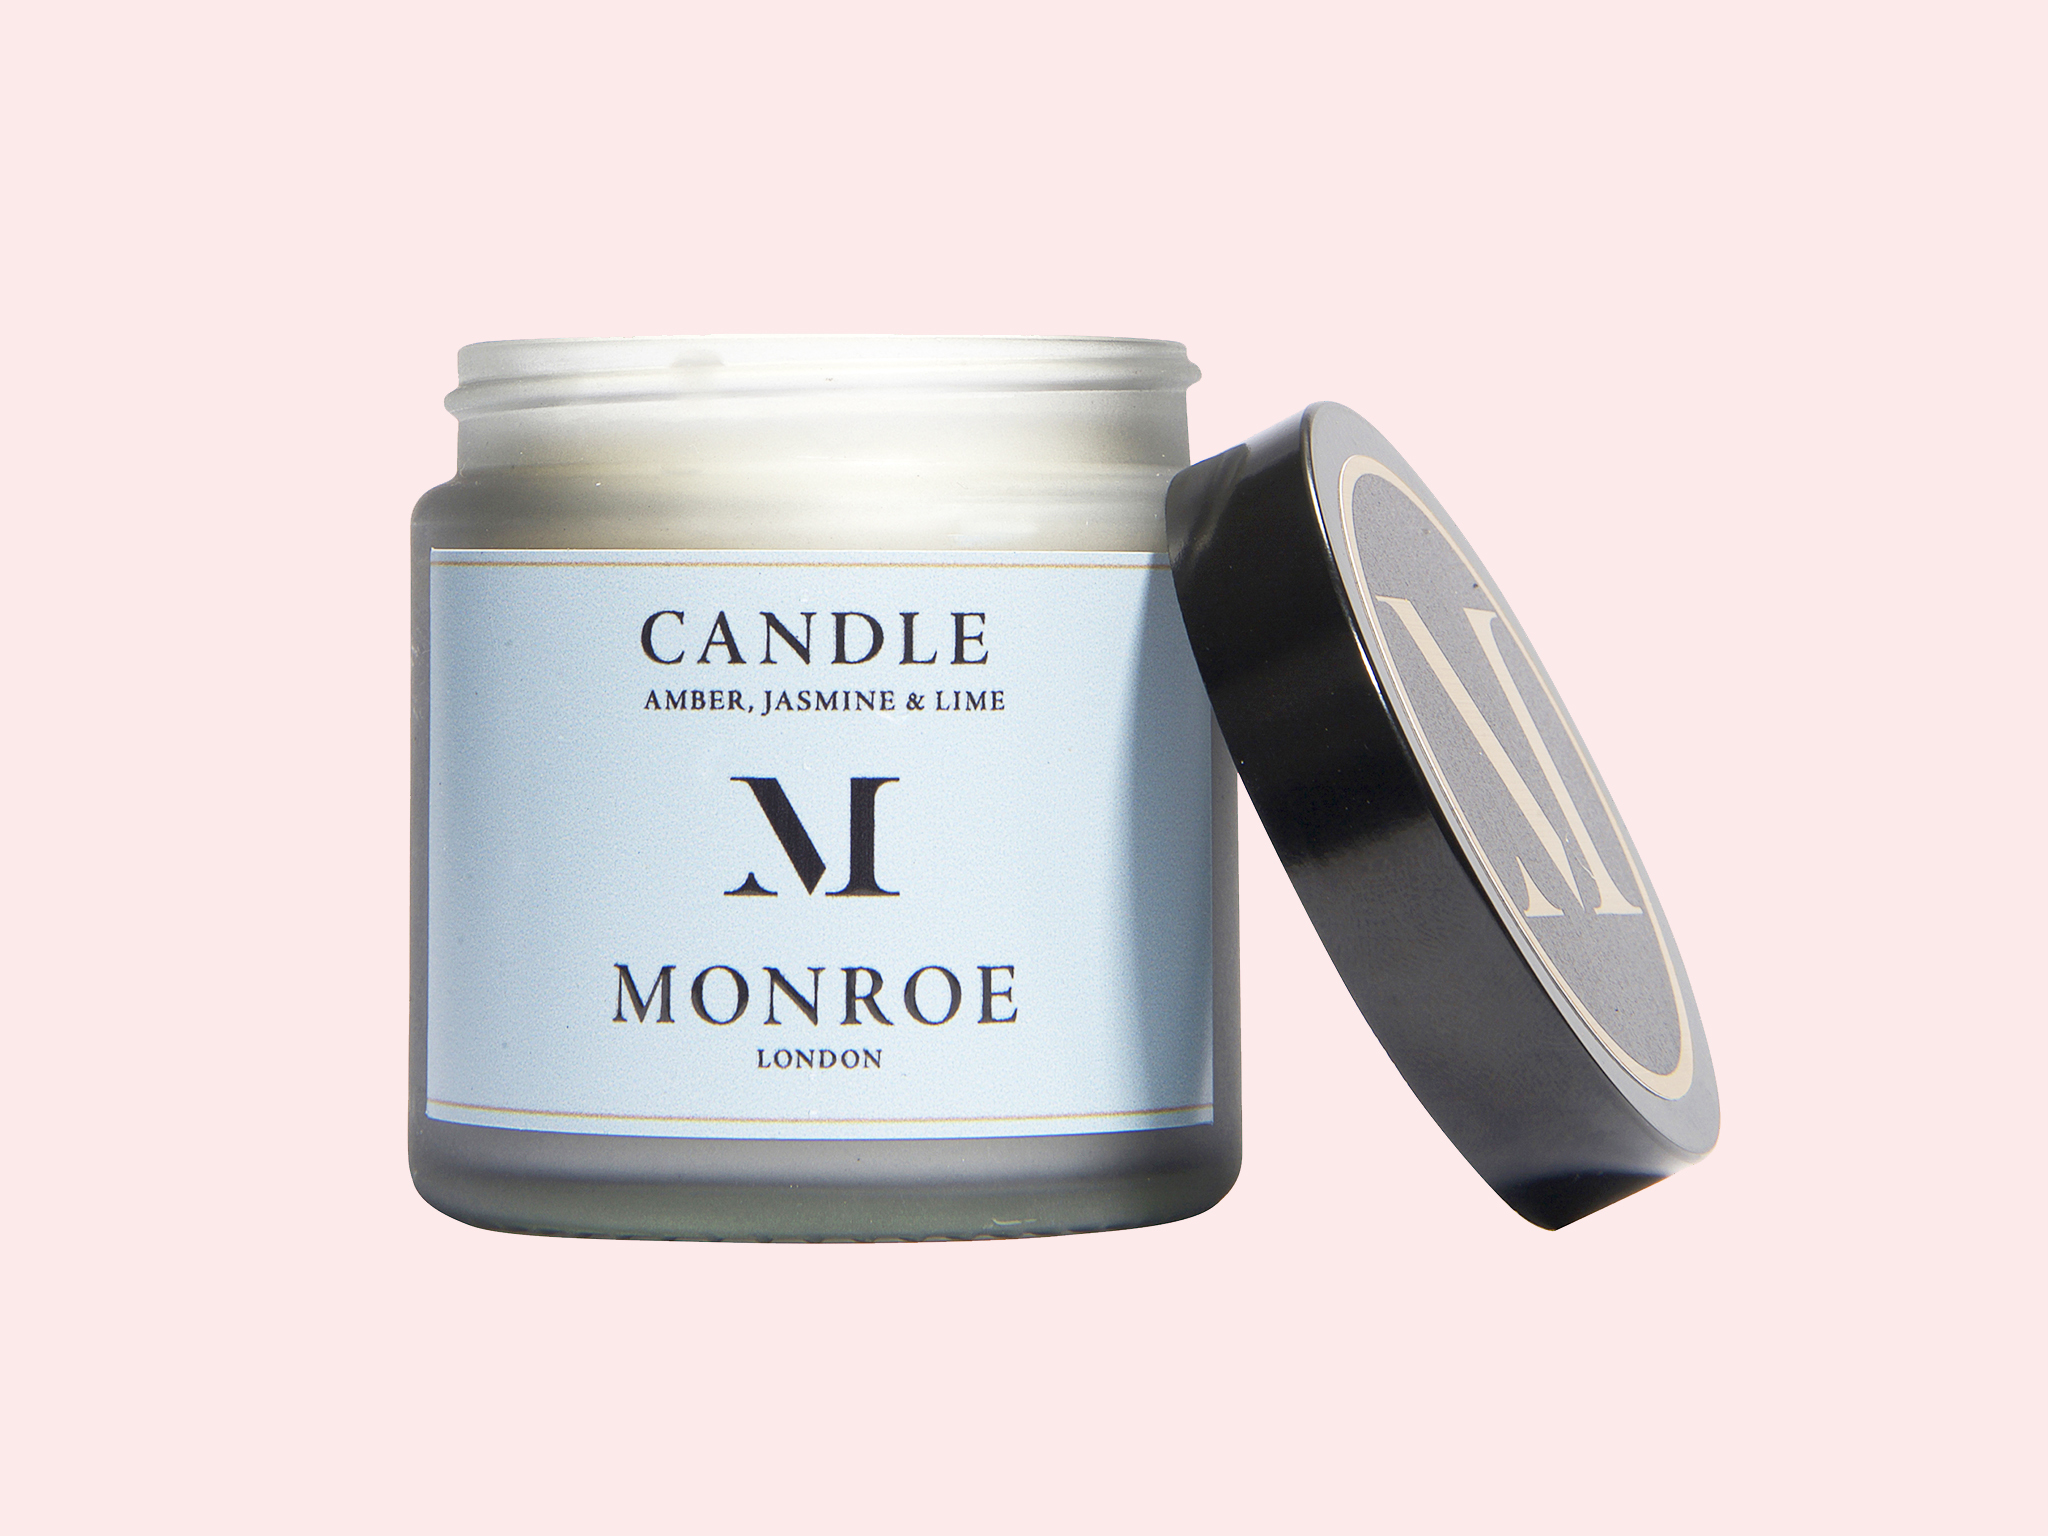 Amber, jasmine & lime candle by Monroe of London